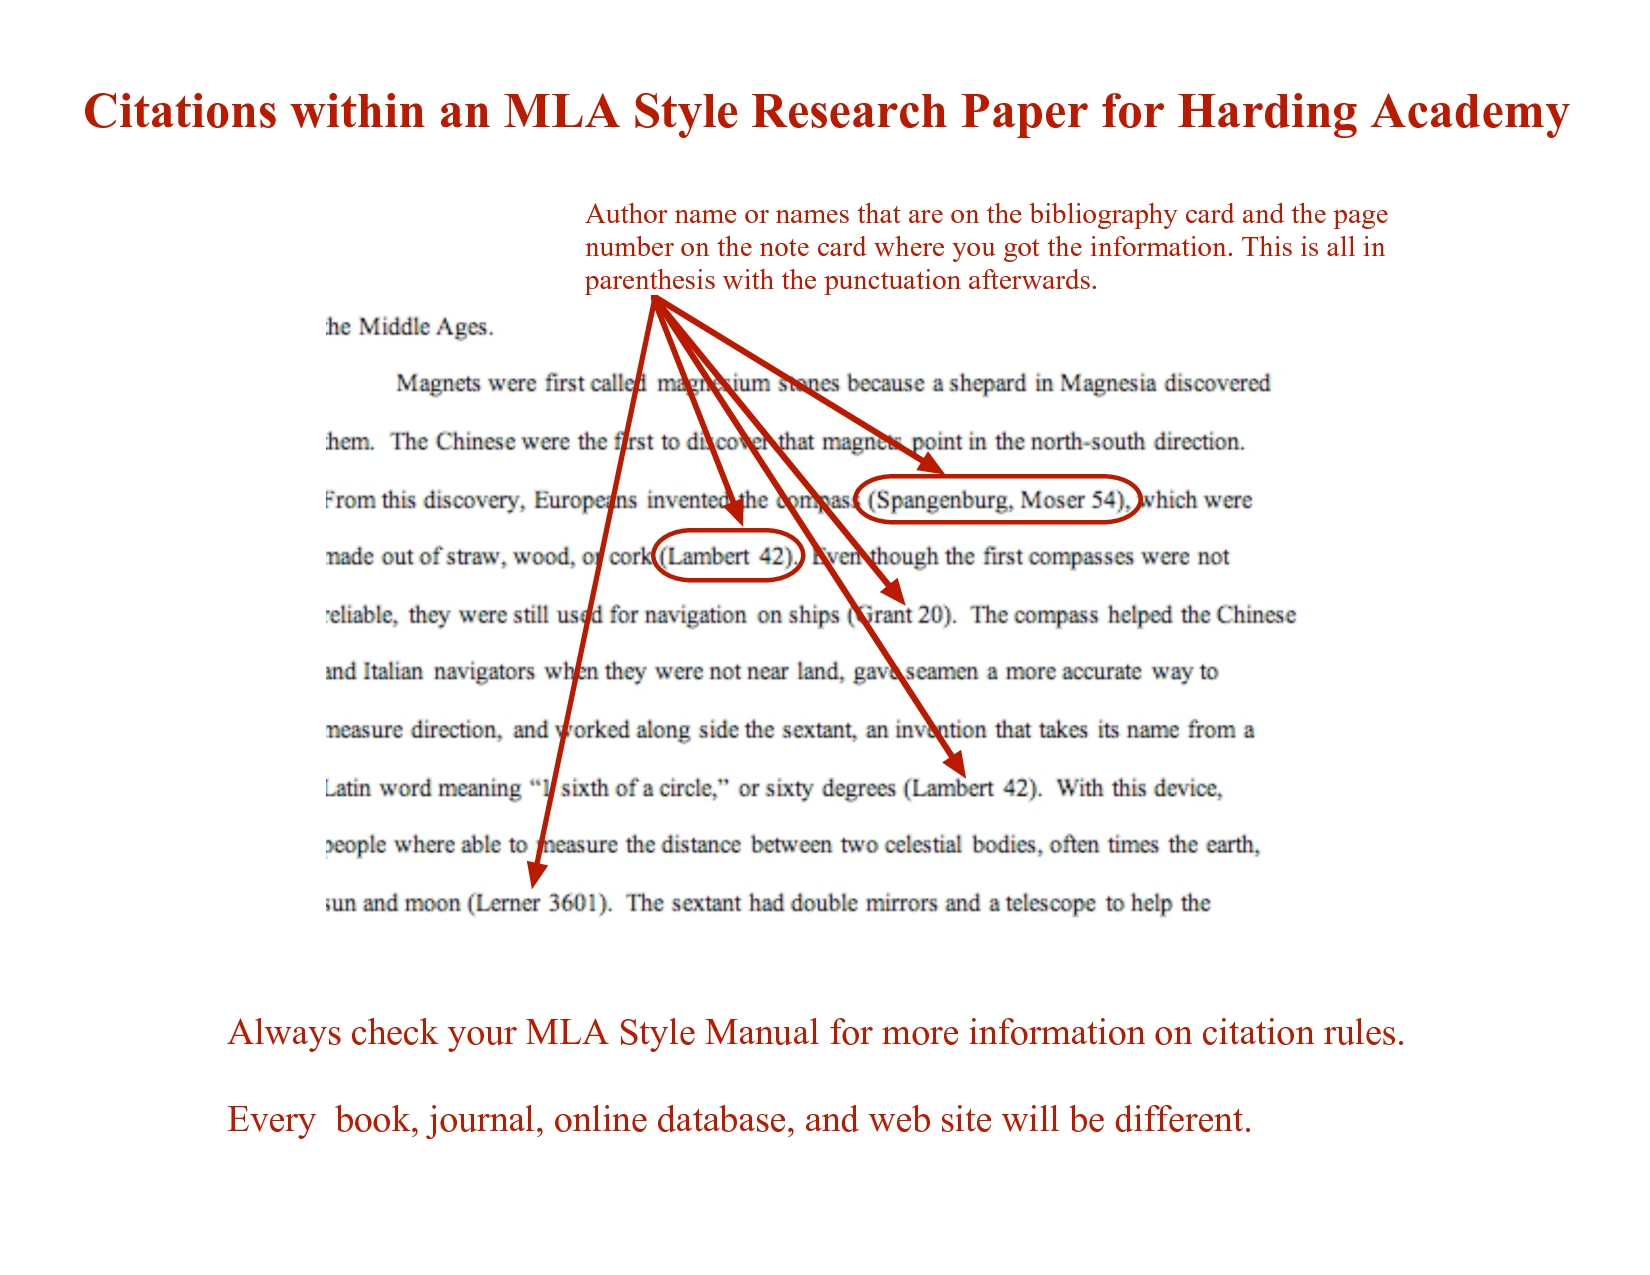 006 Essay Example How To Cite Sources In Citation Mla Twenty Hueandi Co Collection Of Solutions Quote From Website Stunning Research Pape Examples Essays